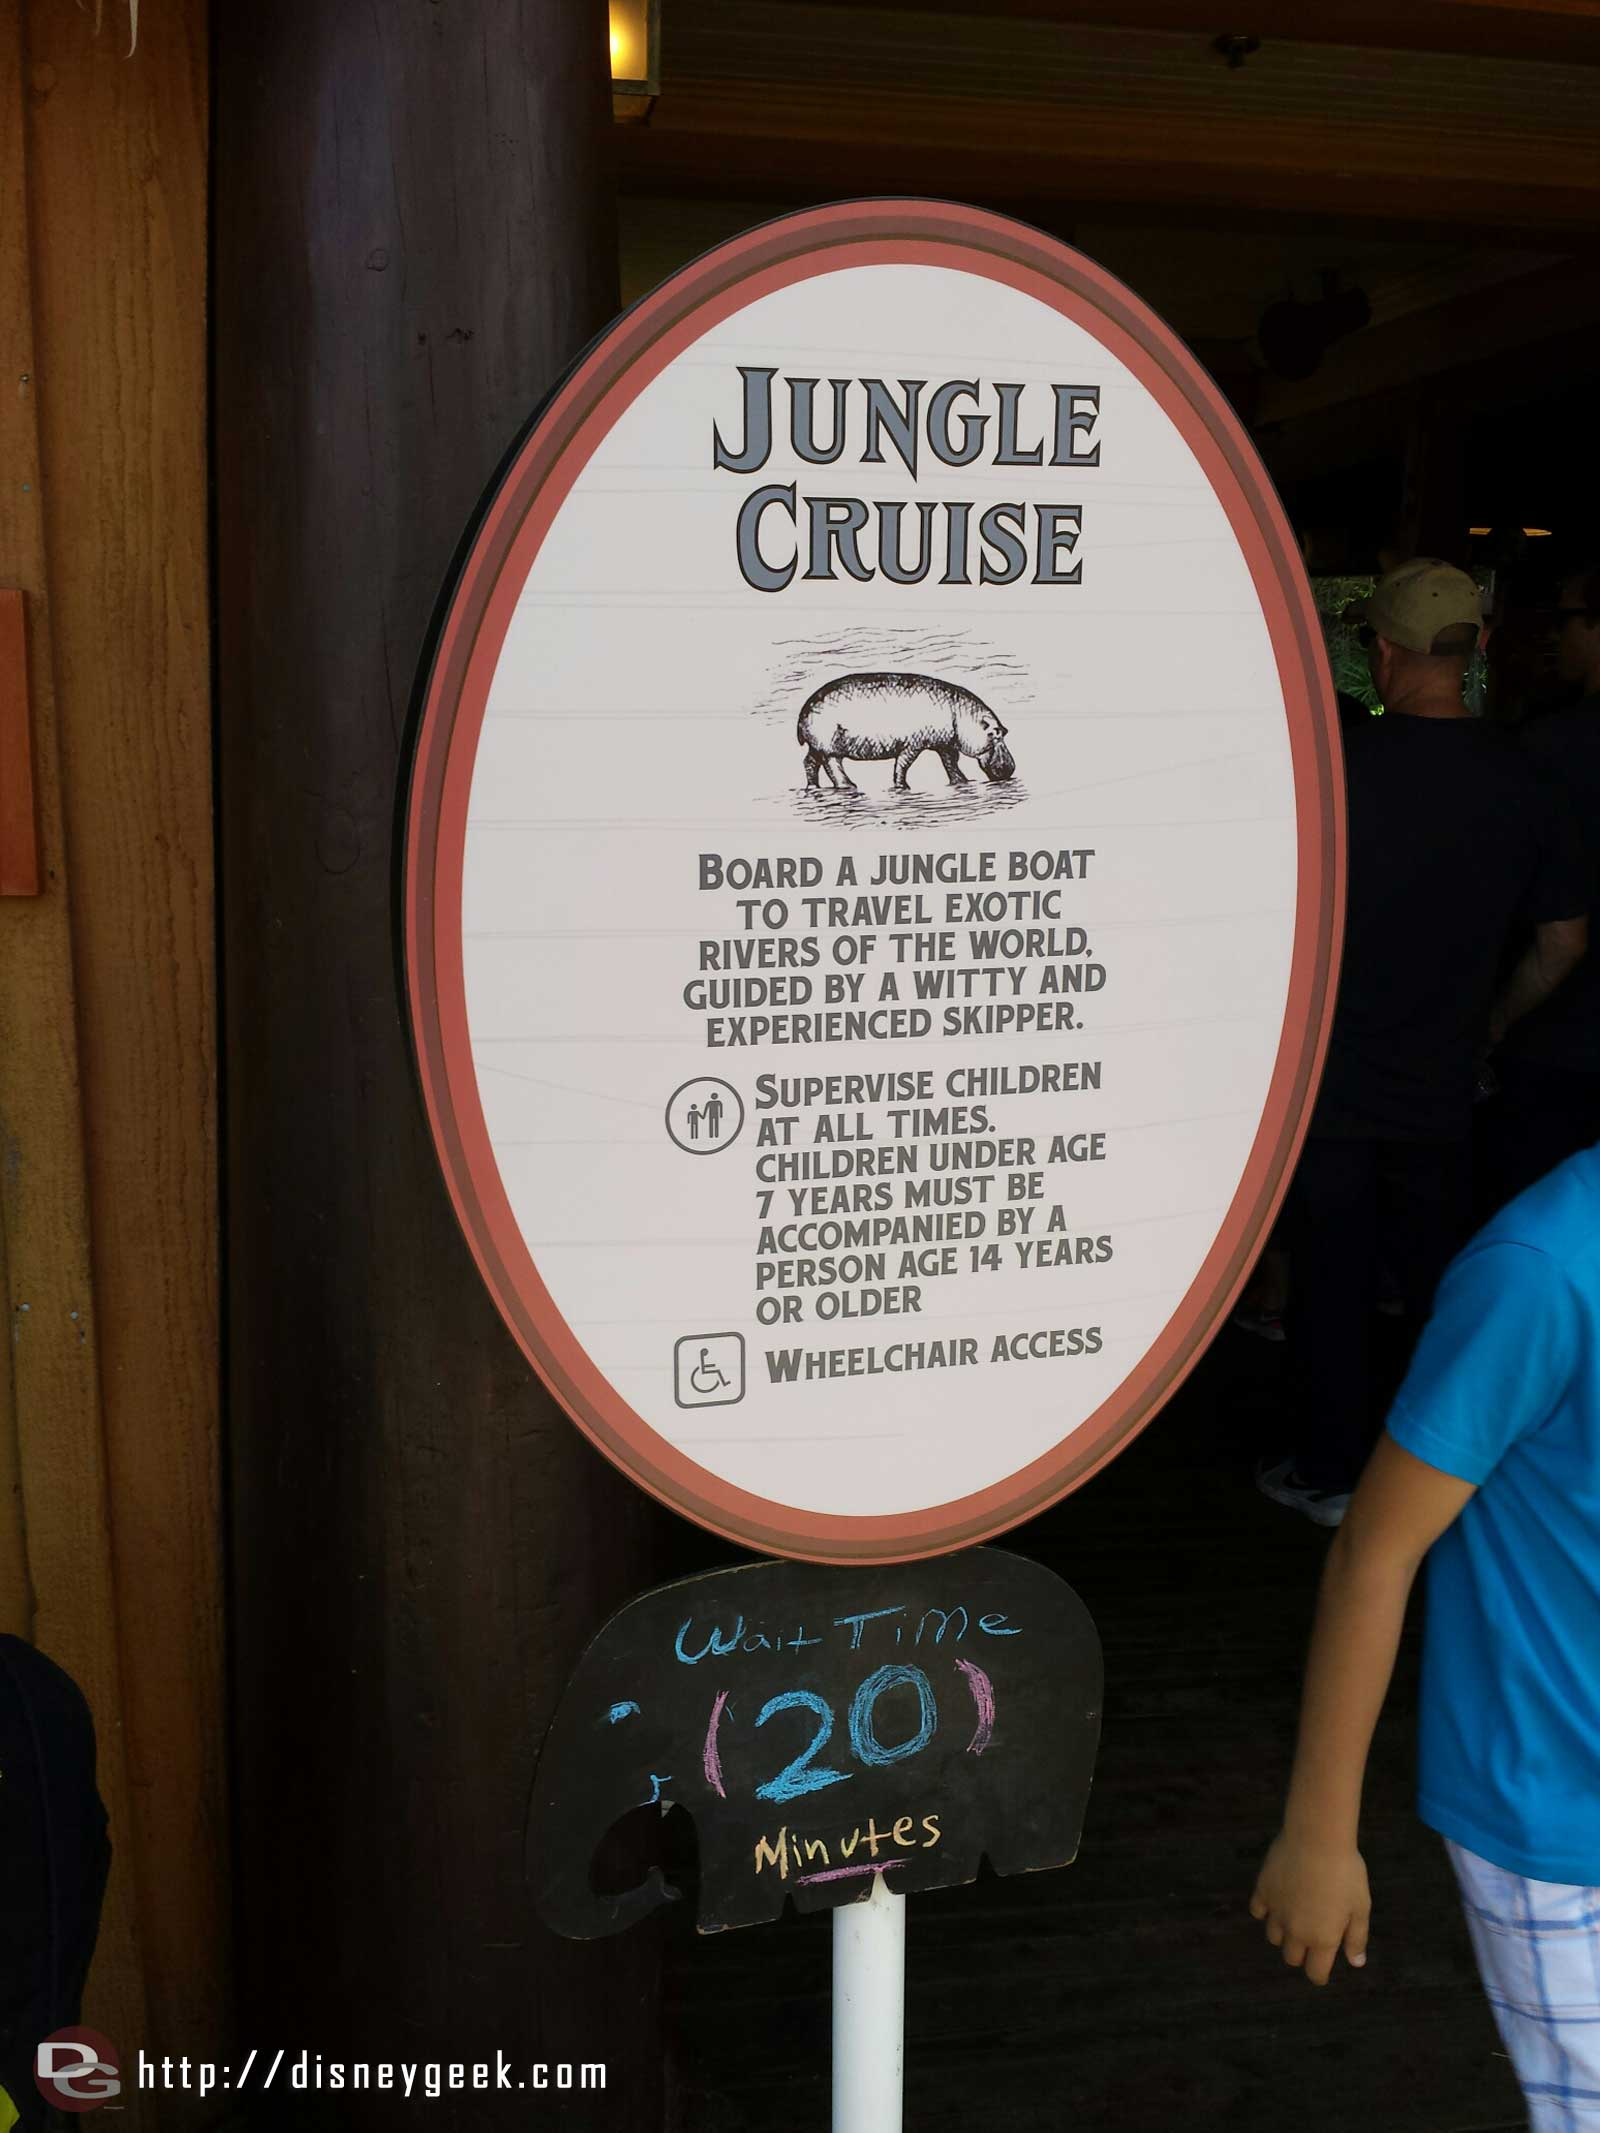 The Jungle Cruise has a temporary wait sign near the entrance (20 min as of 1:25pm)